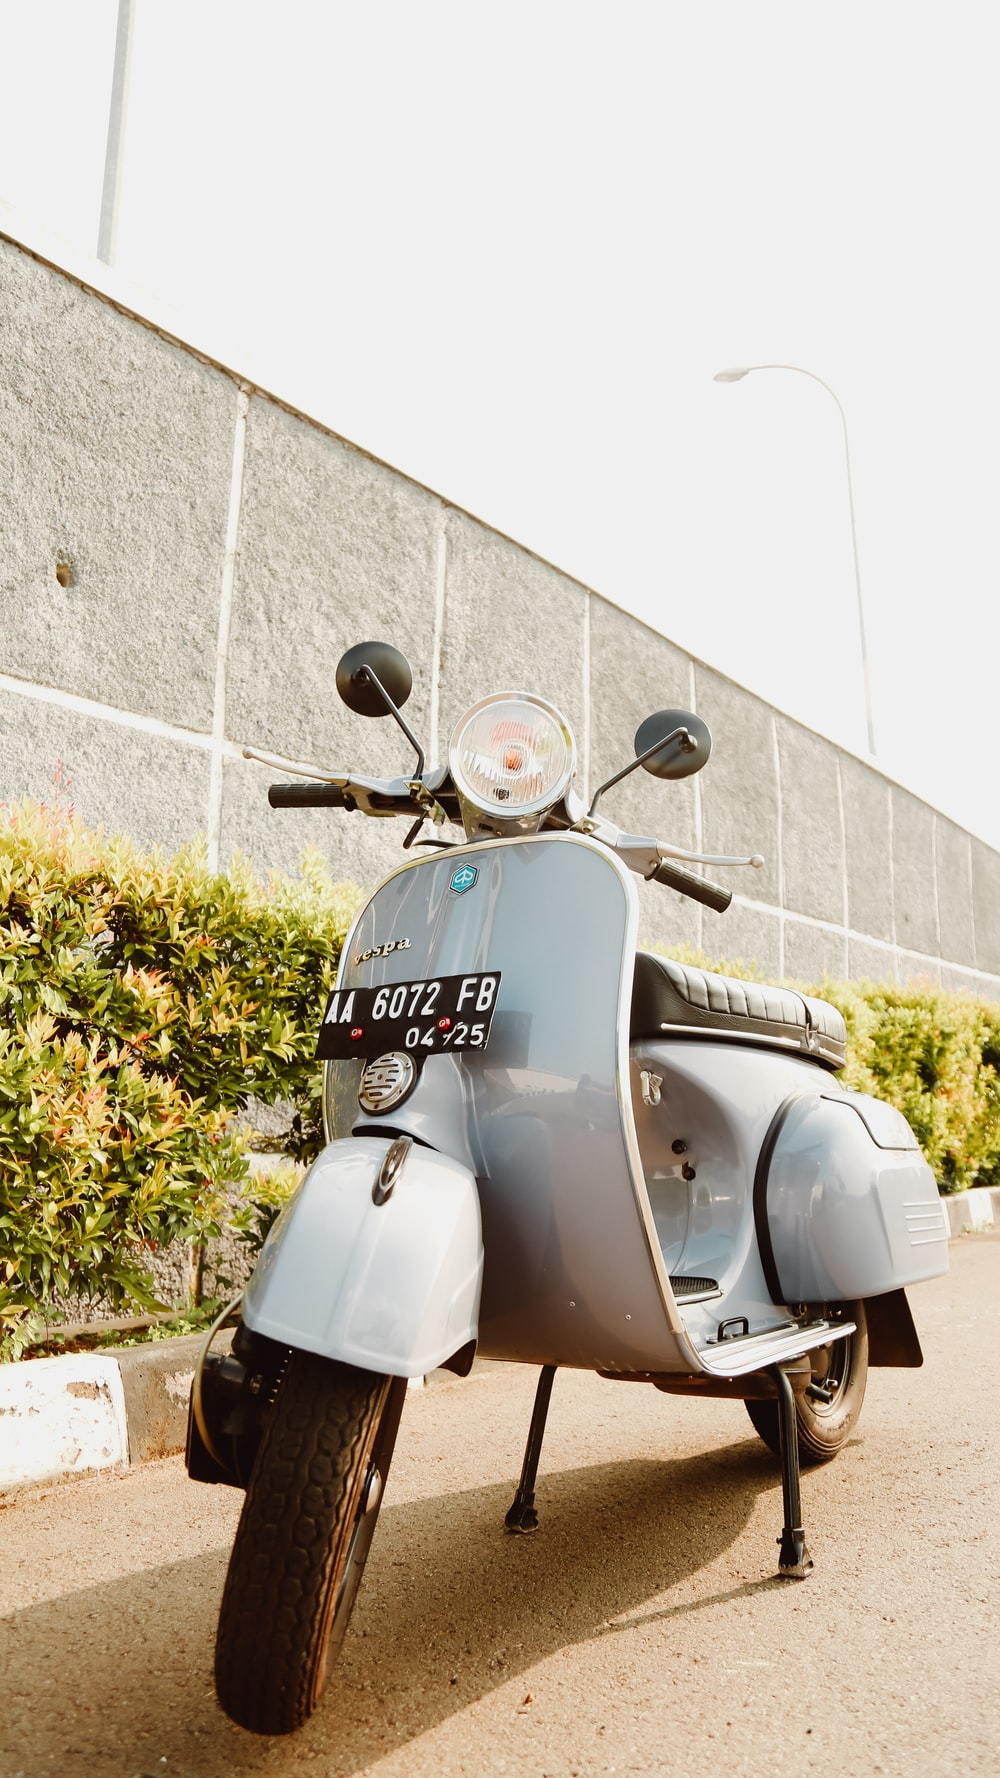 blue and gray motor scooter